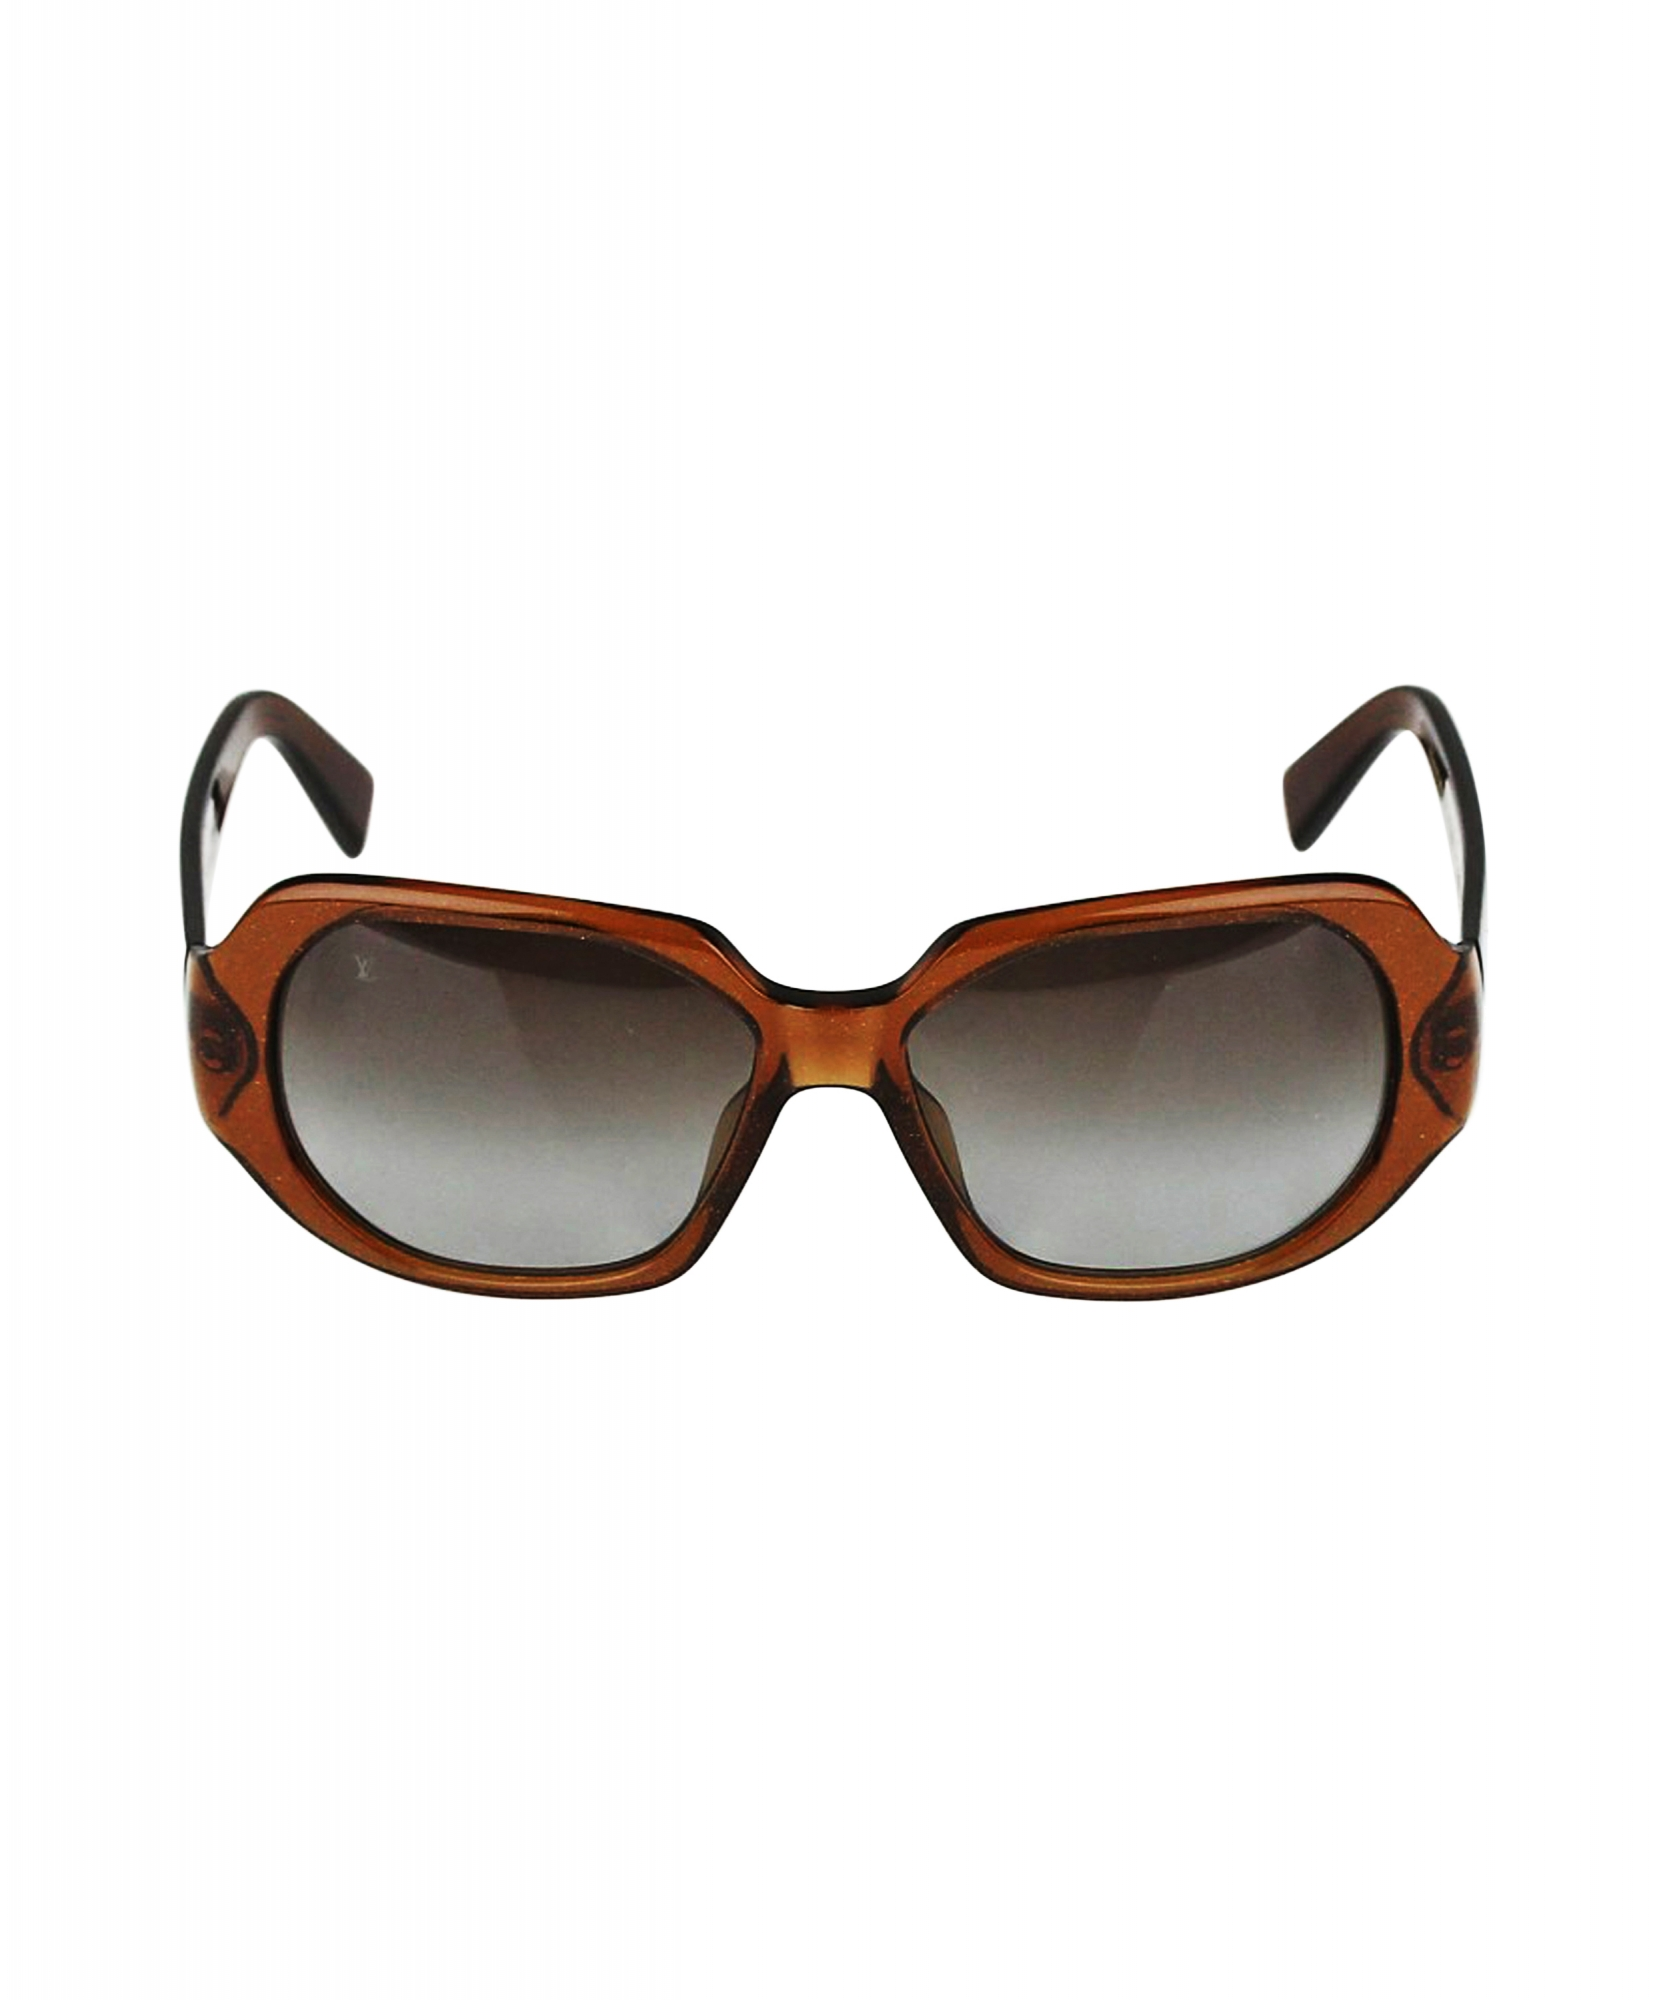 9af48298014 Louis Vuitton Obsession GM Sunglasses